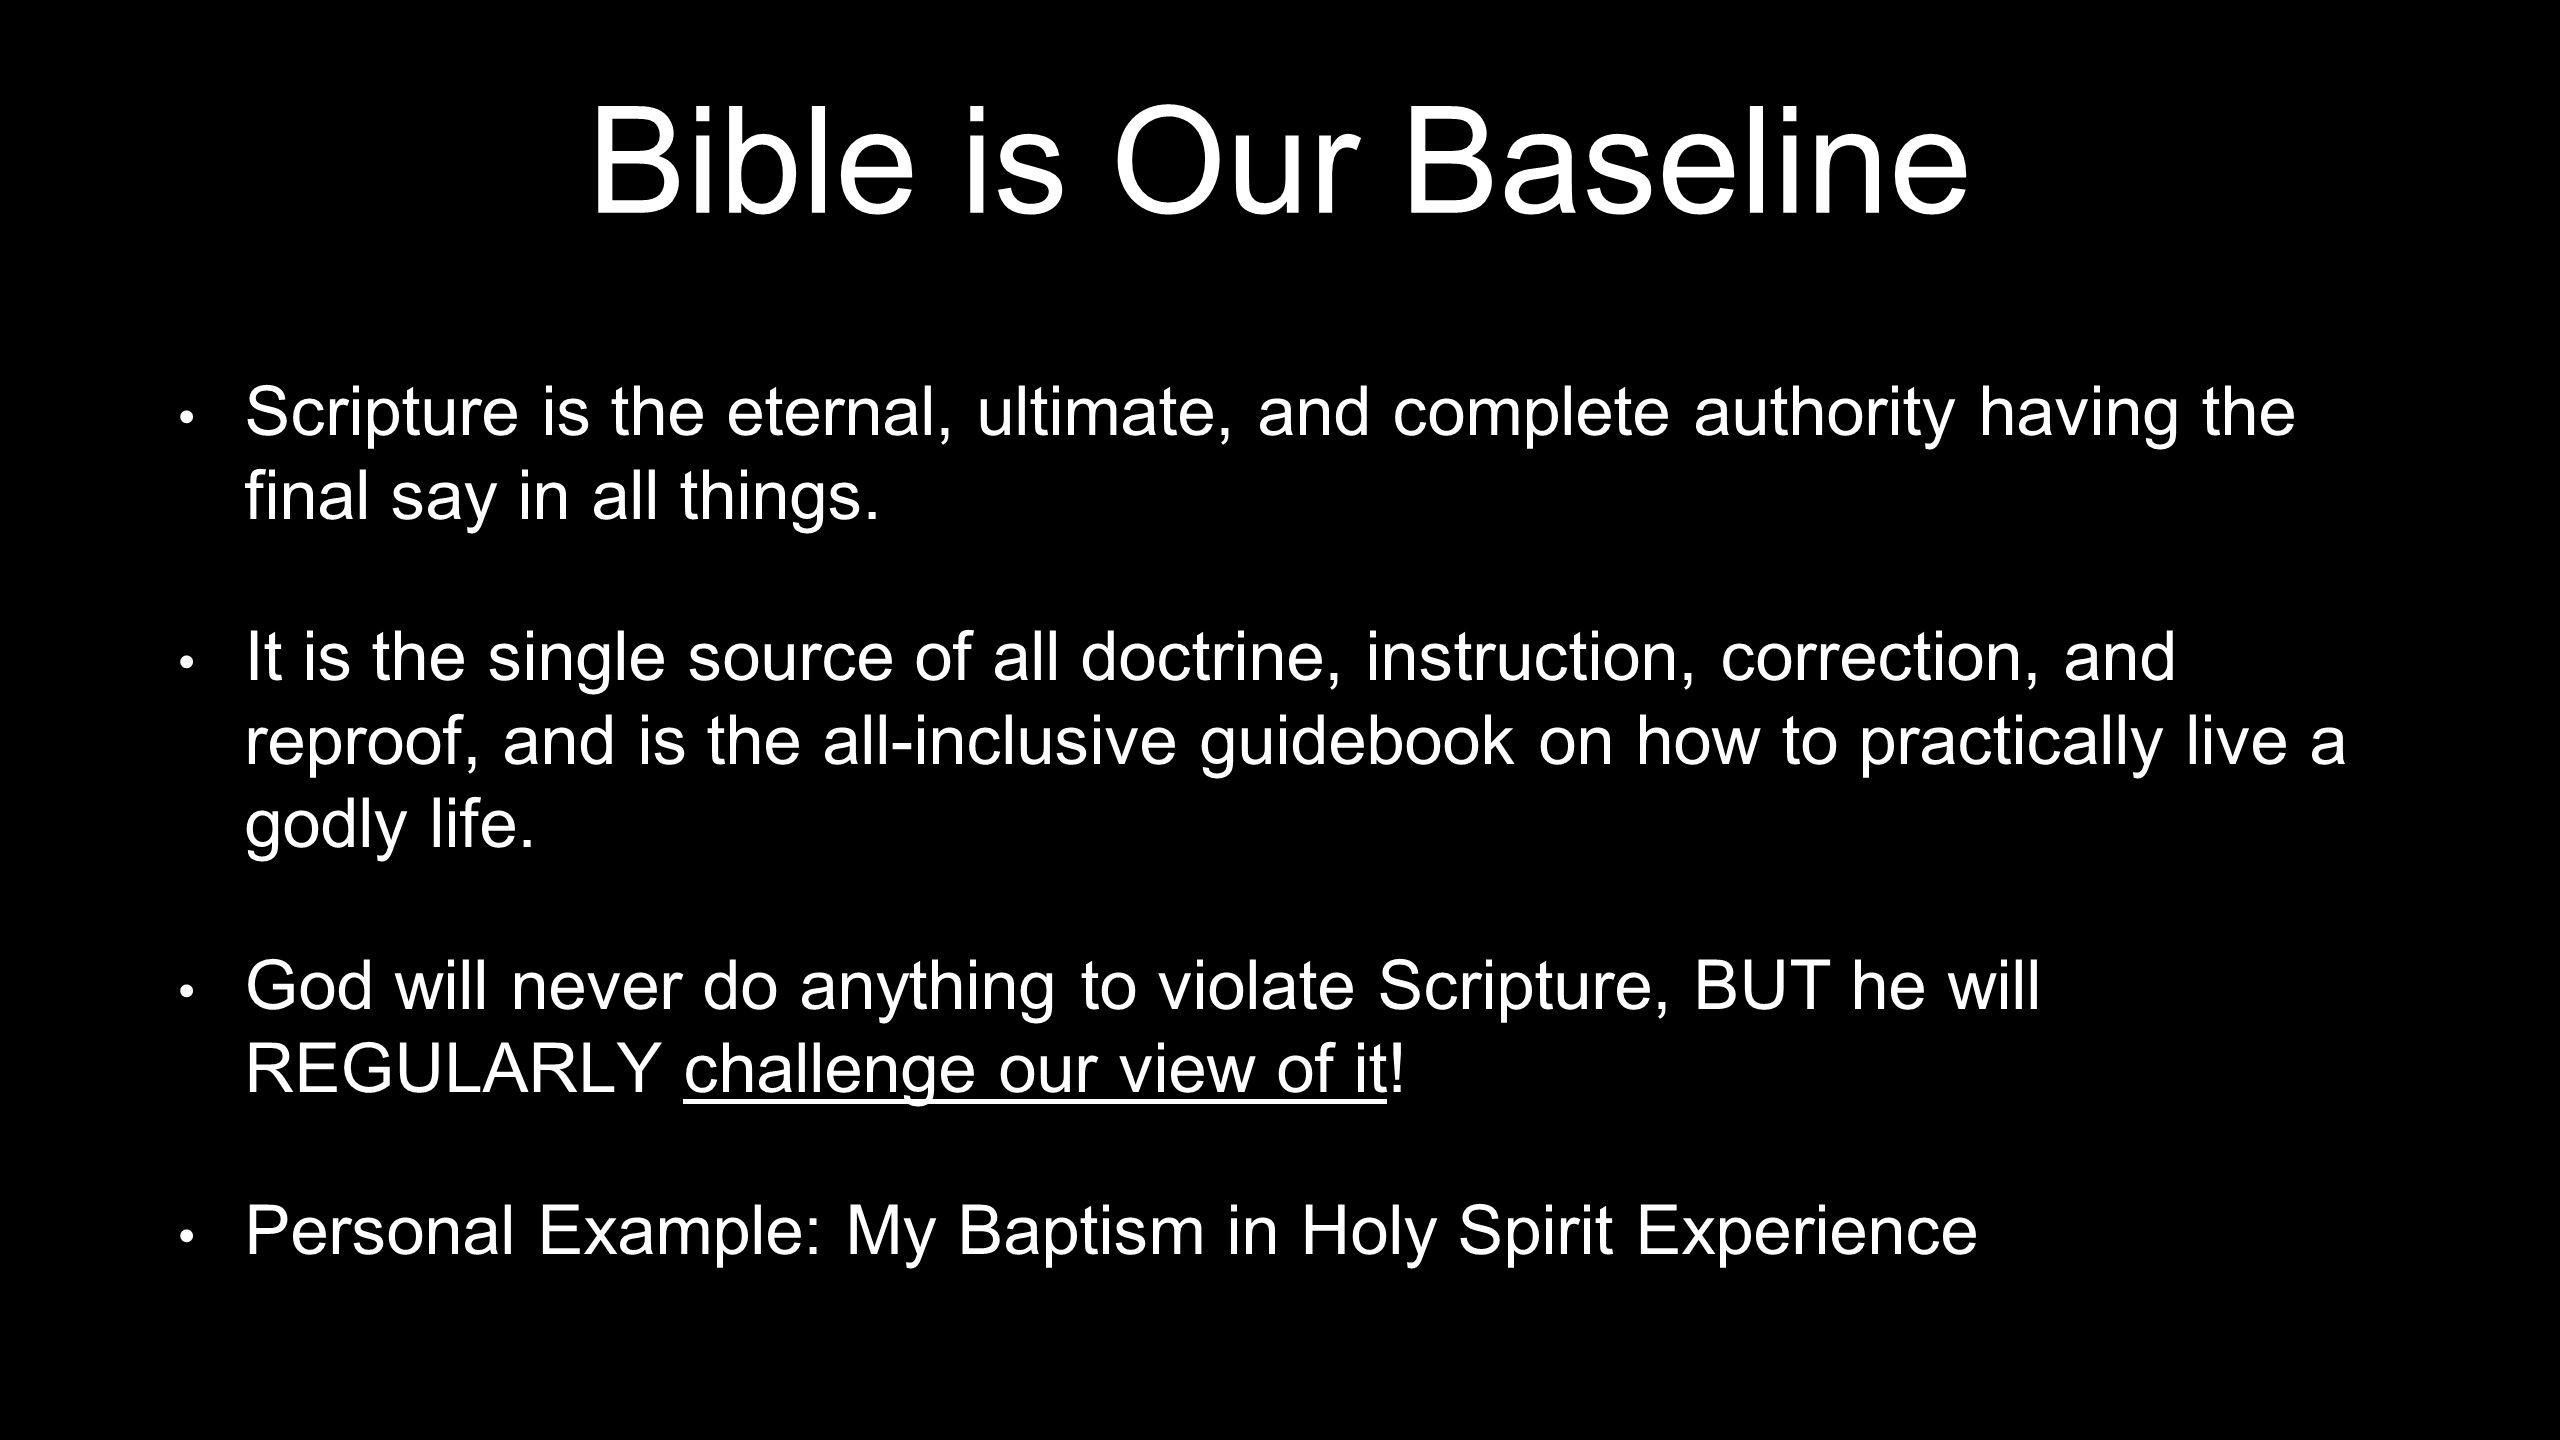 Bible is Our Baseline Scripture is the eternal, ultimate, and complete authority having the final say in all things.